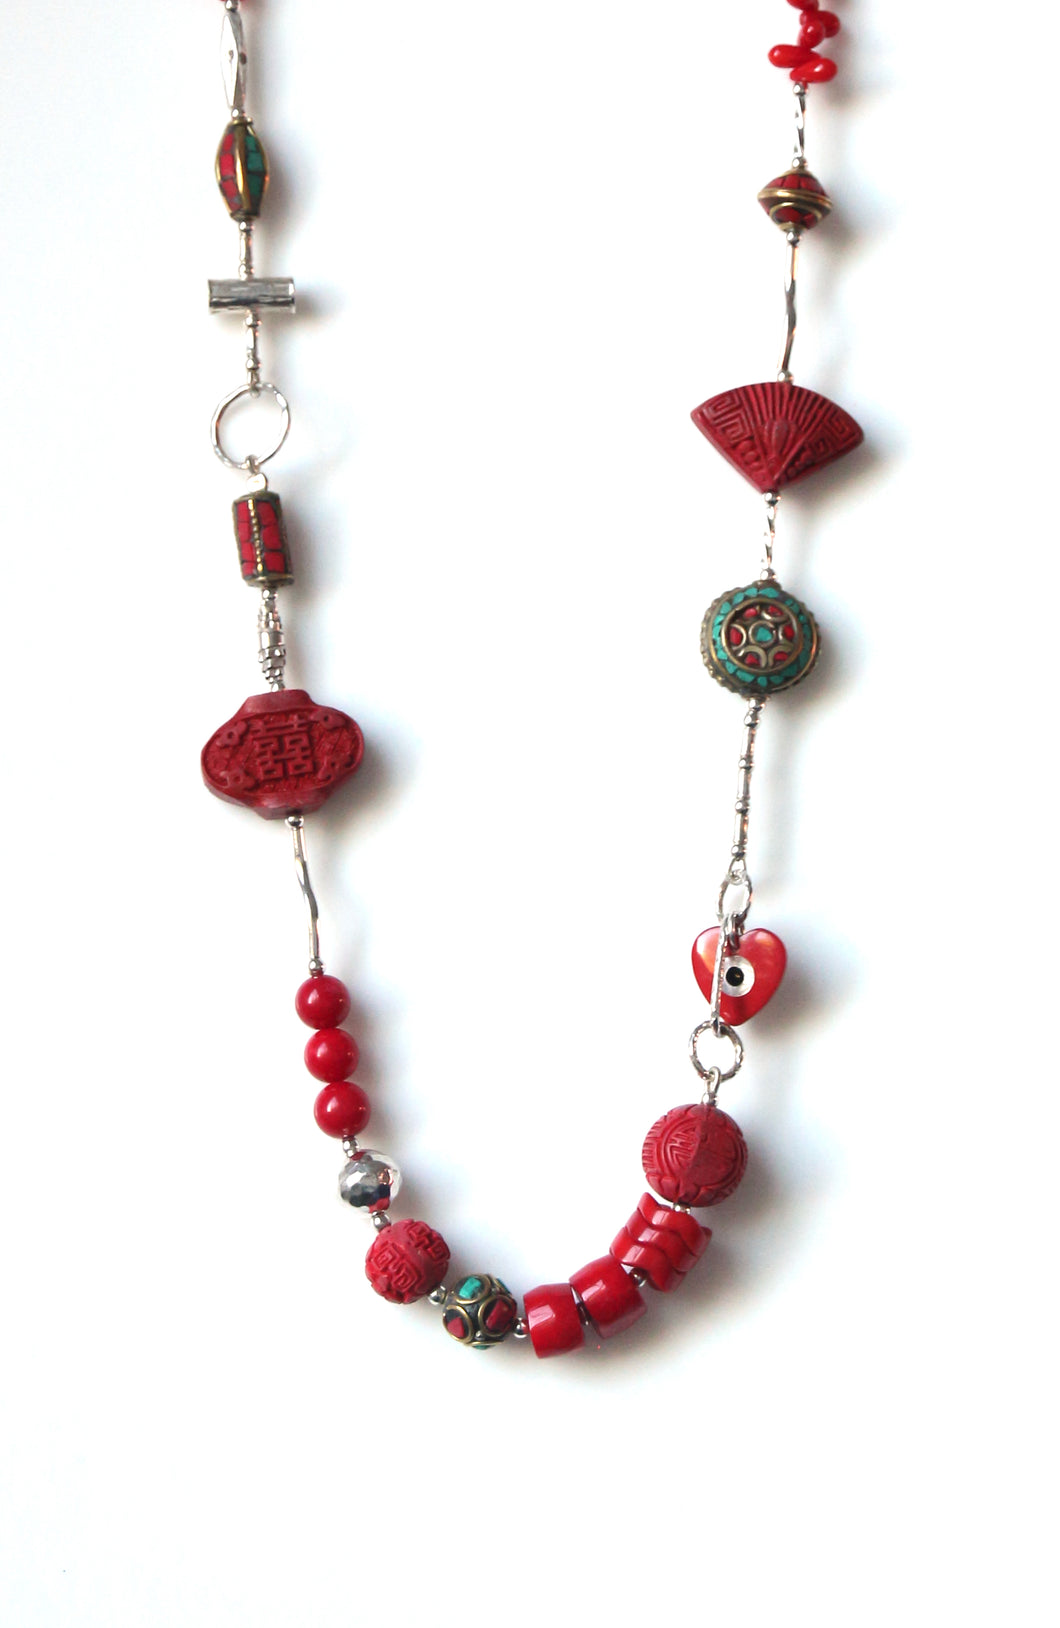 Australian Handmade Red Coral Bead Necklace Cinnabar Nepalese Beads Sterling Silver